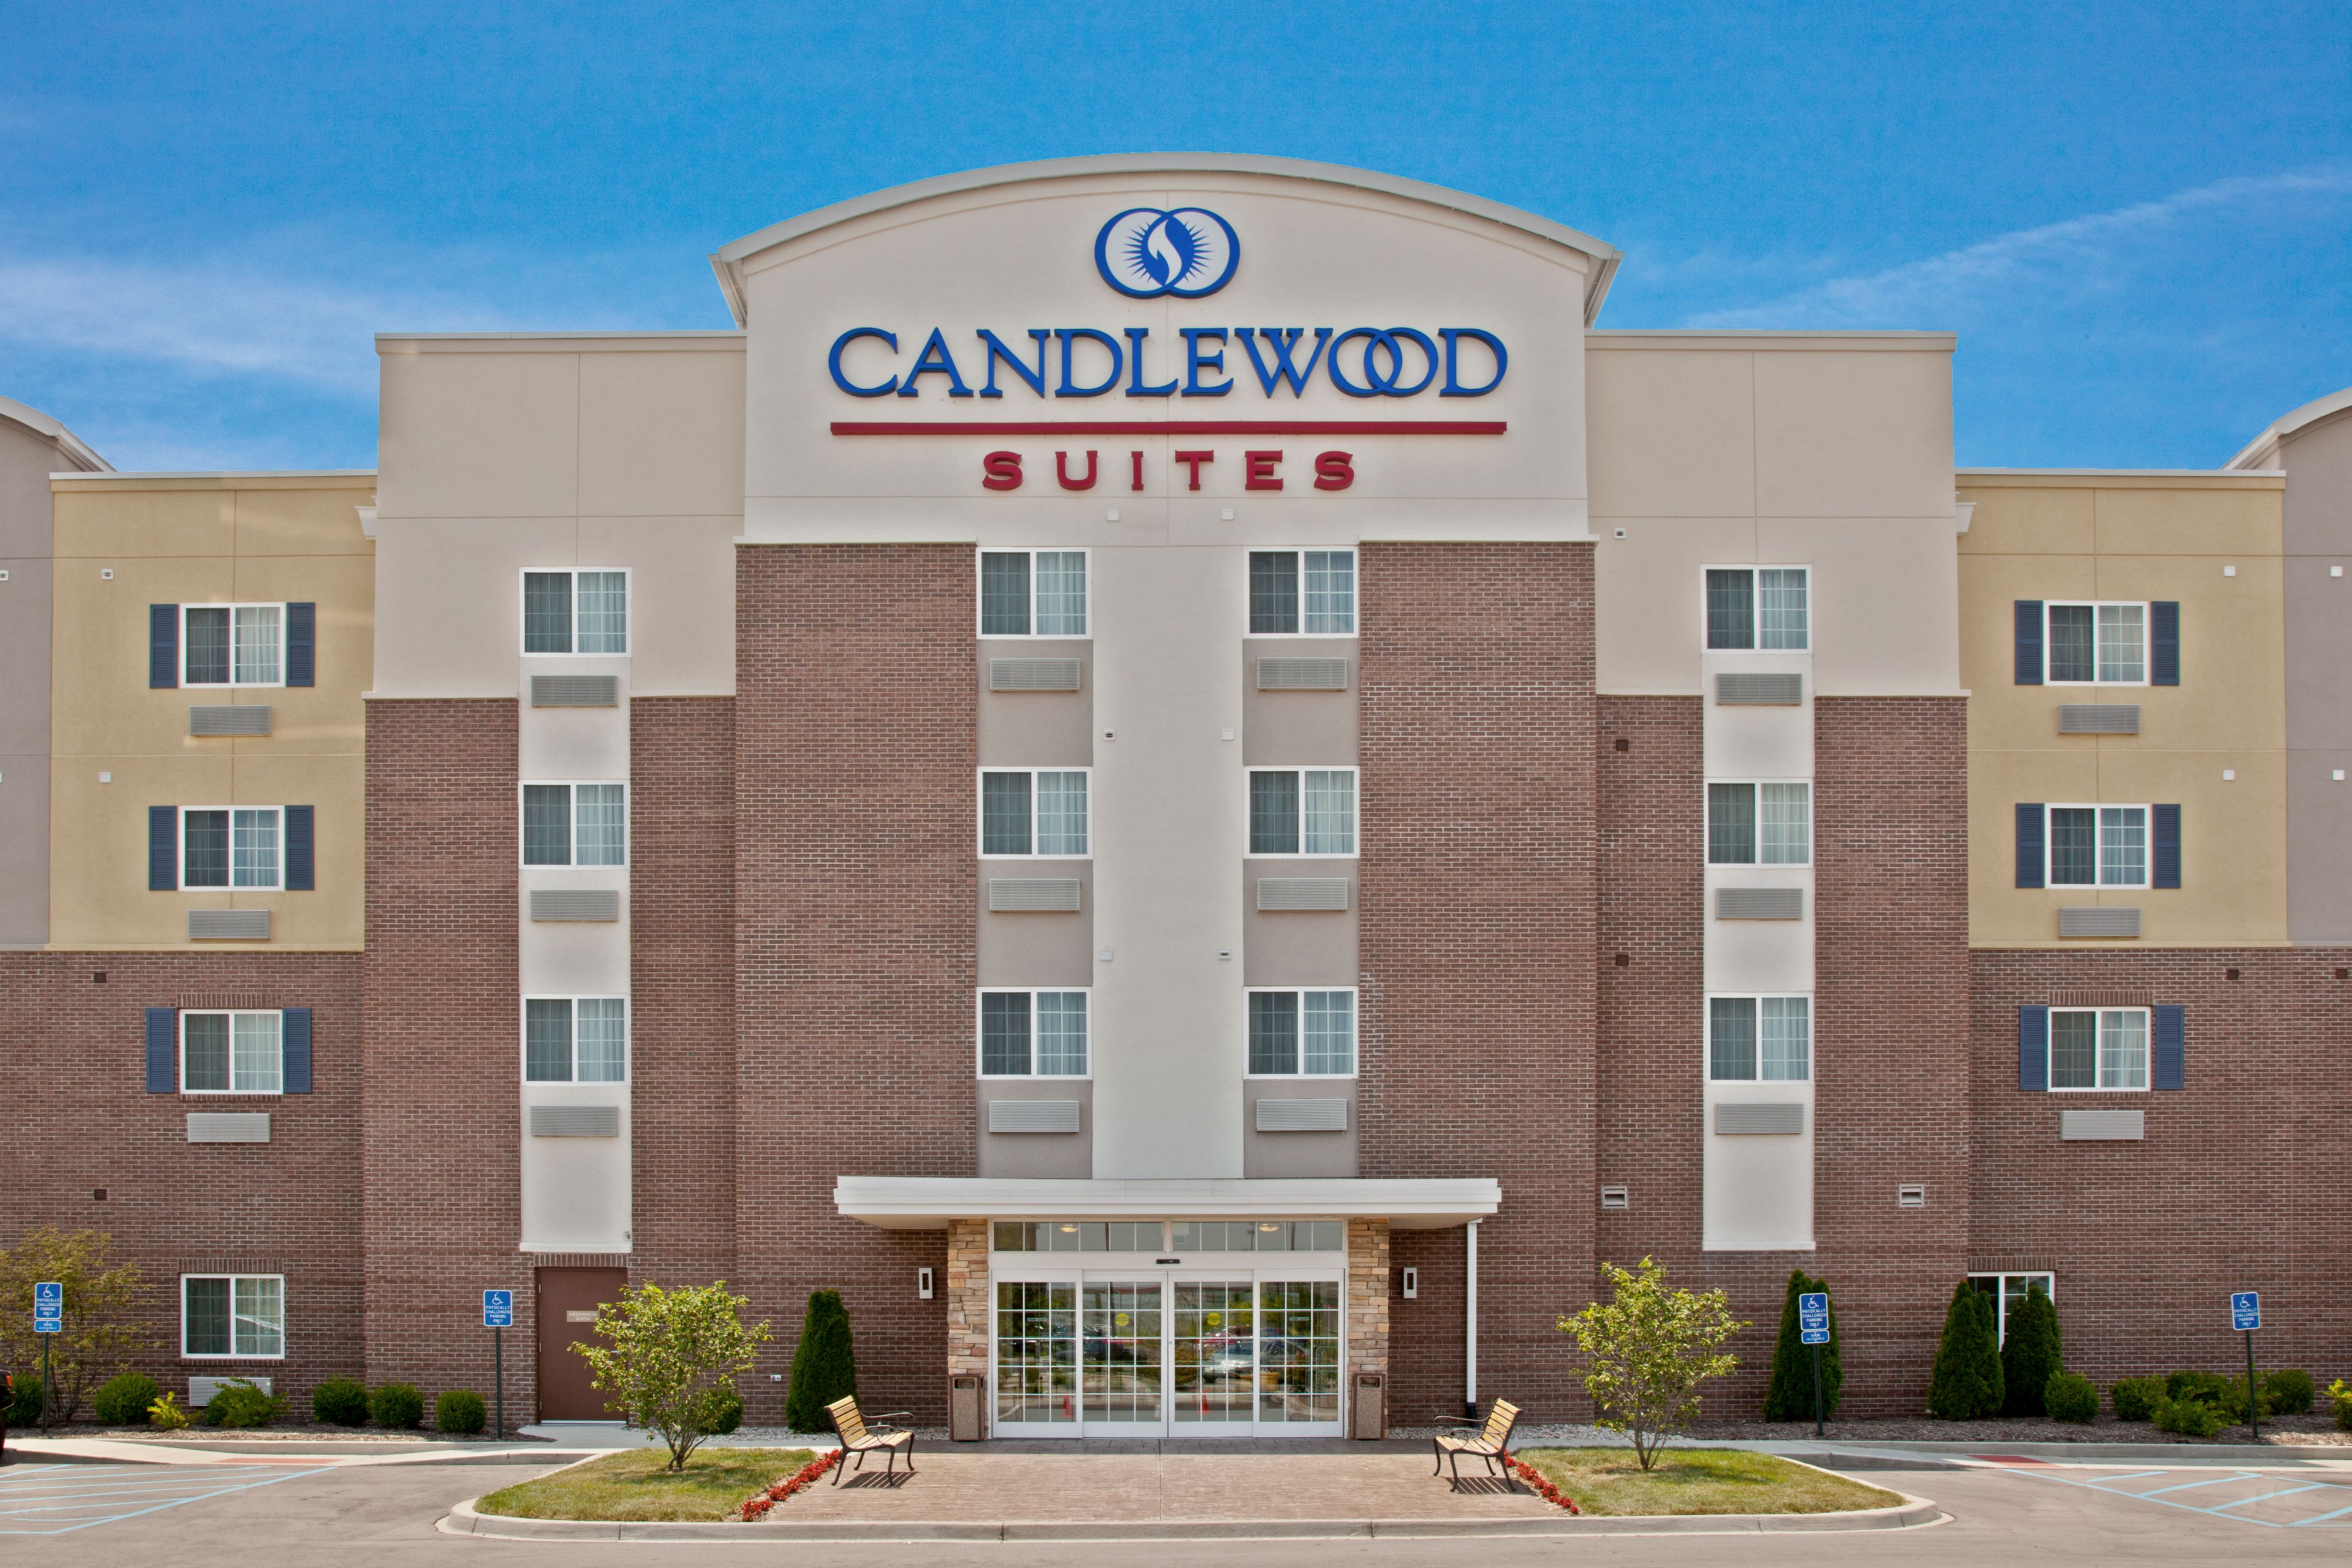 Candlewood Suites Lincoln In Lincoln Ne Whitepages